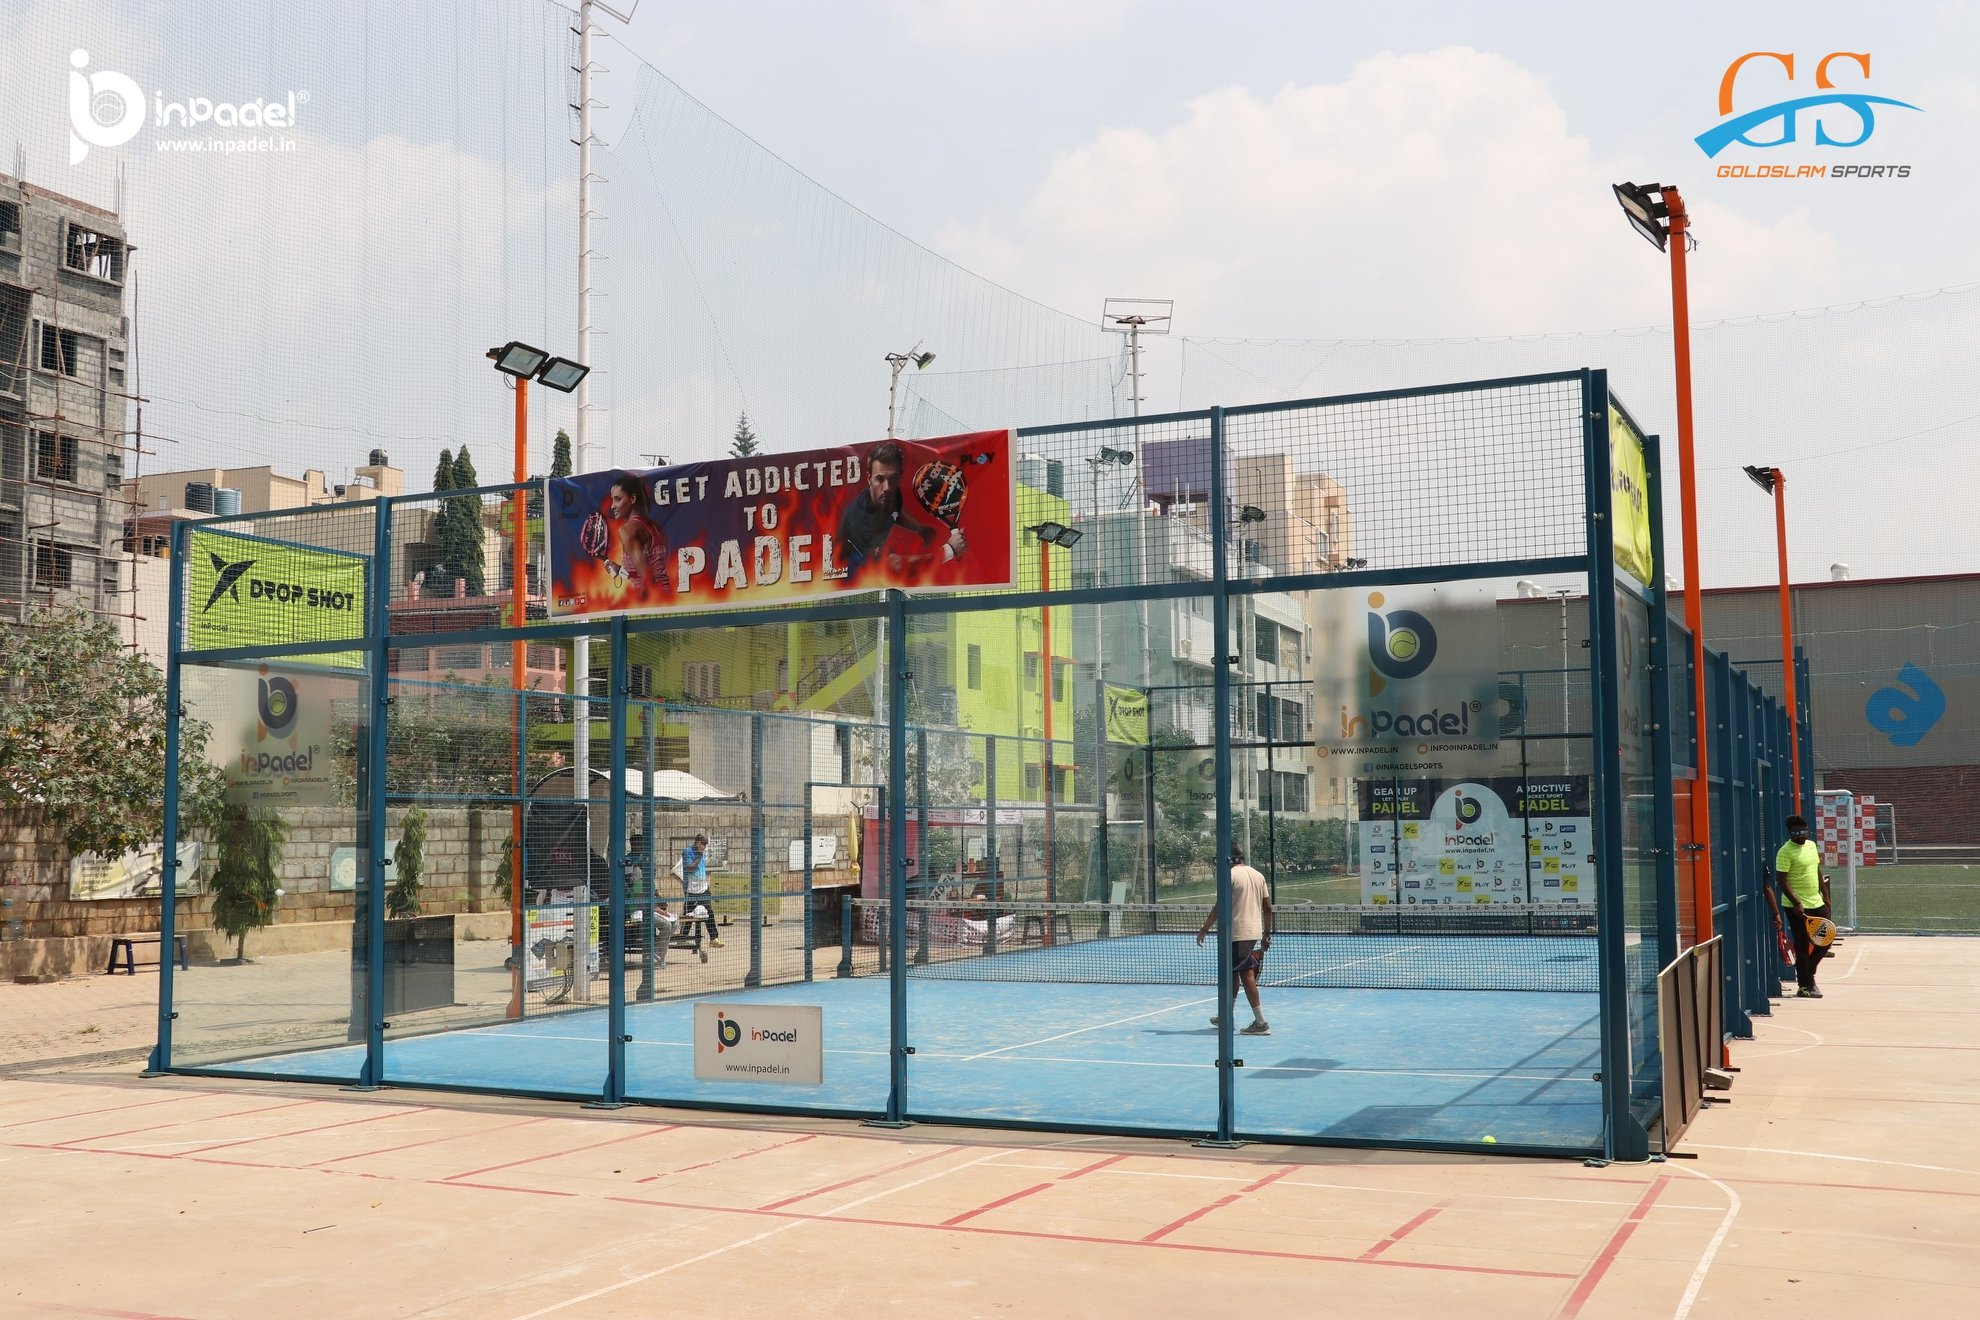 InPadel Corporate Website by GoldSlam Sports (2)